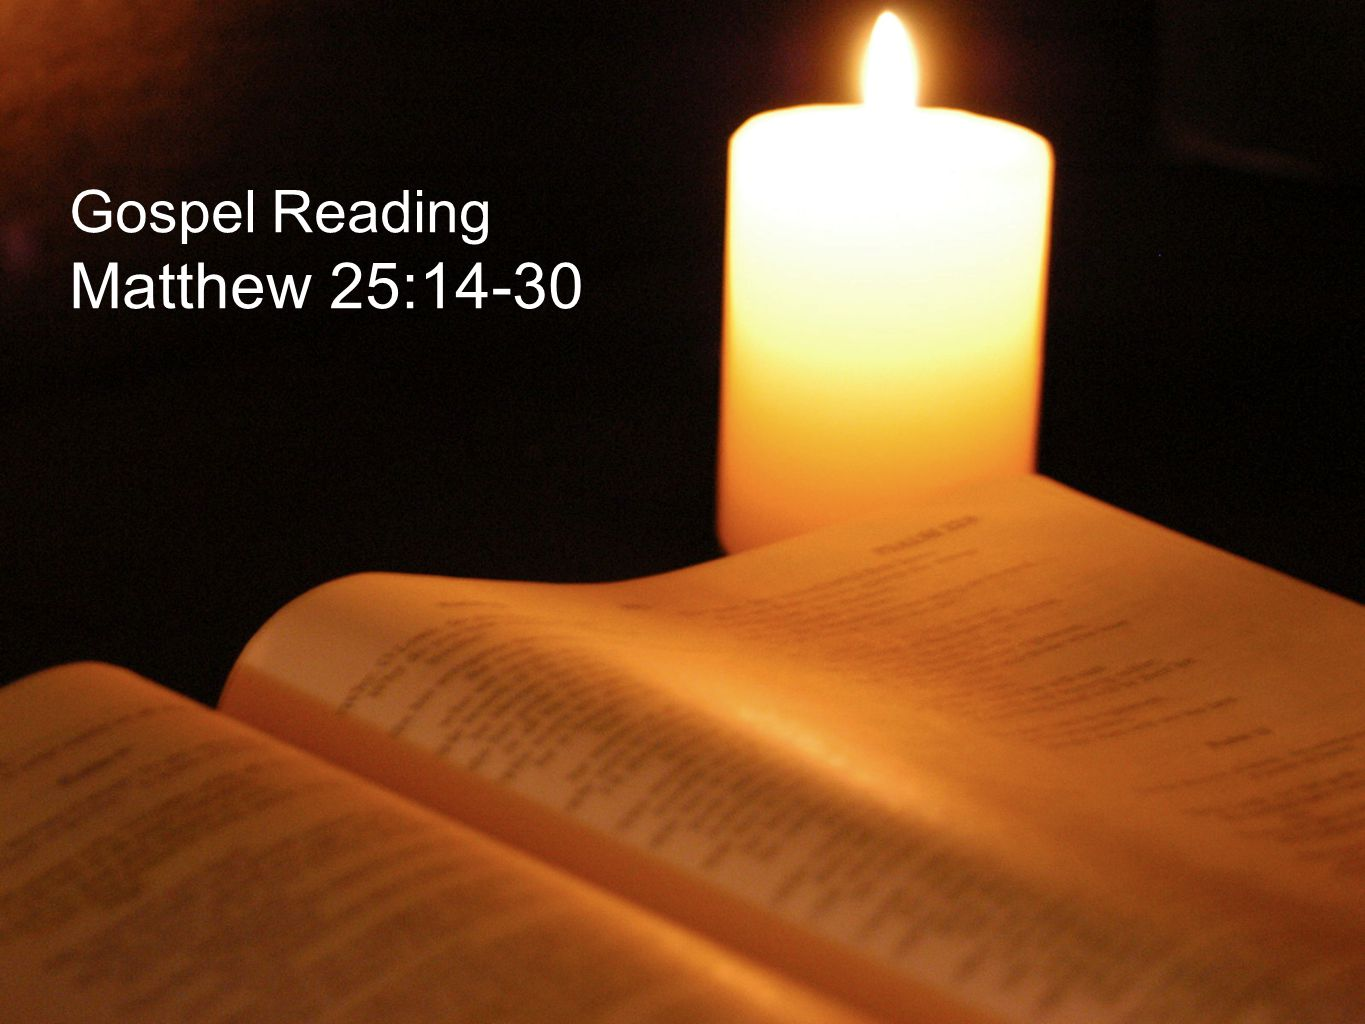 Gospel Reading Matthew 25:14-30